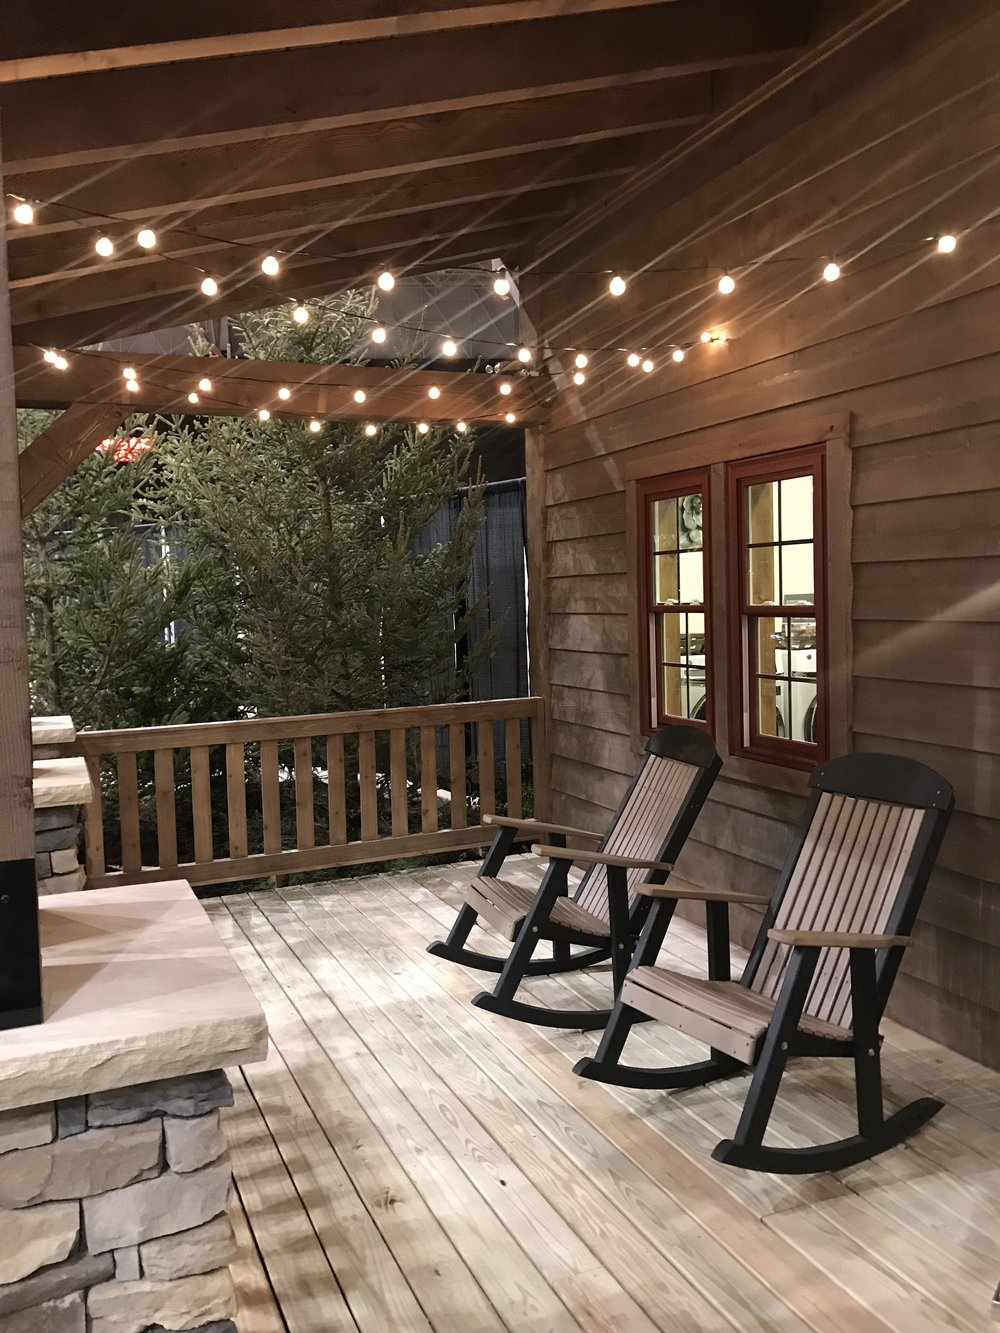 Hanging lights on front porch of model home